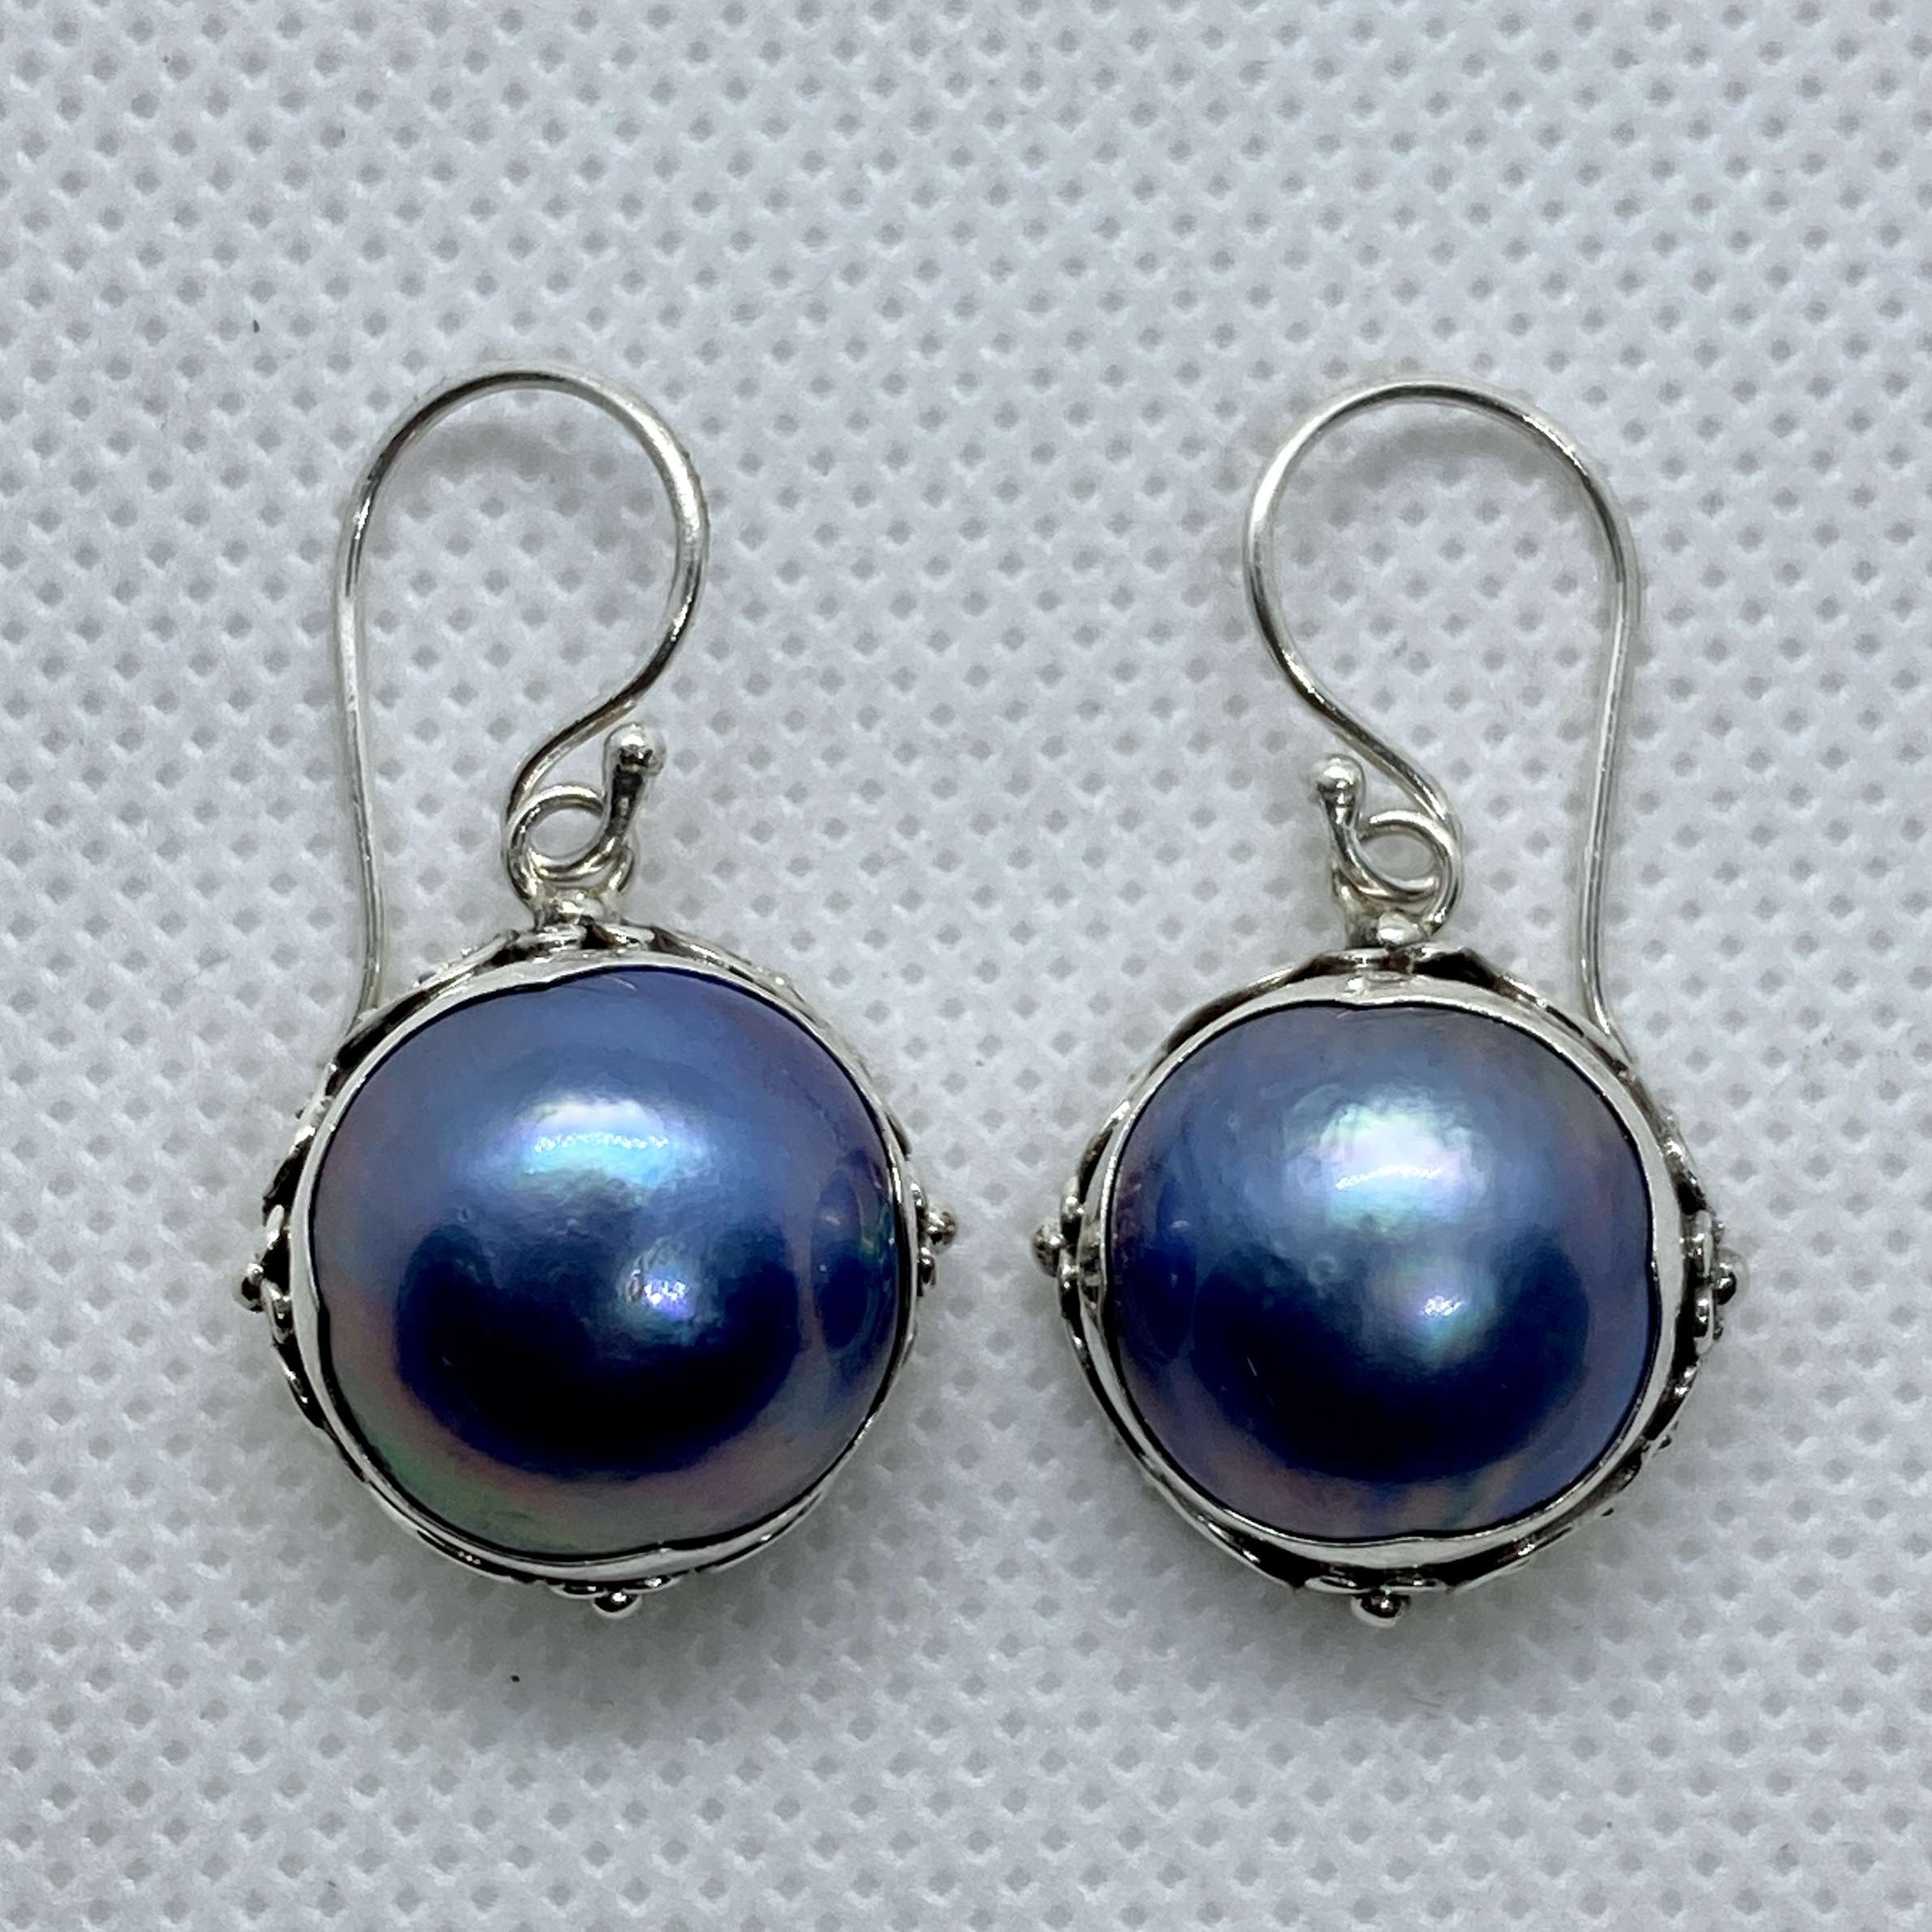 BALI SILVER EARRINGS WITH BLUE MABE PEARL